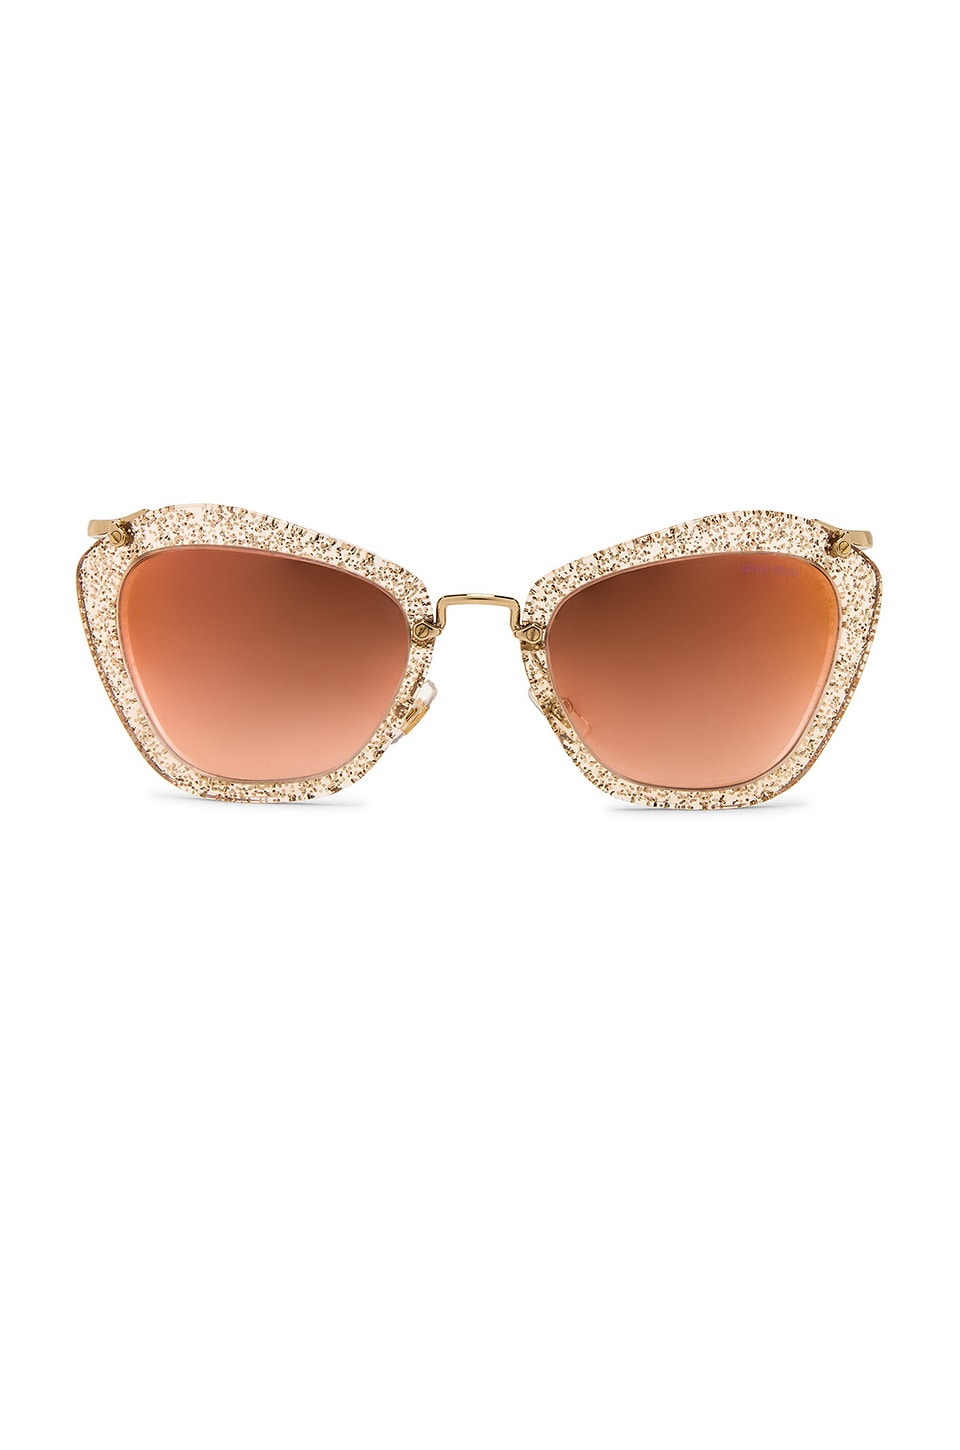 Miu Miu Glitter Geometric Square in Glitter Gold & Gradient Pink Mirror